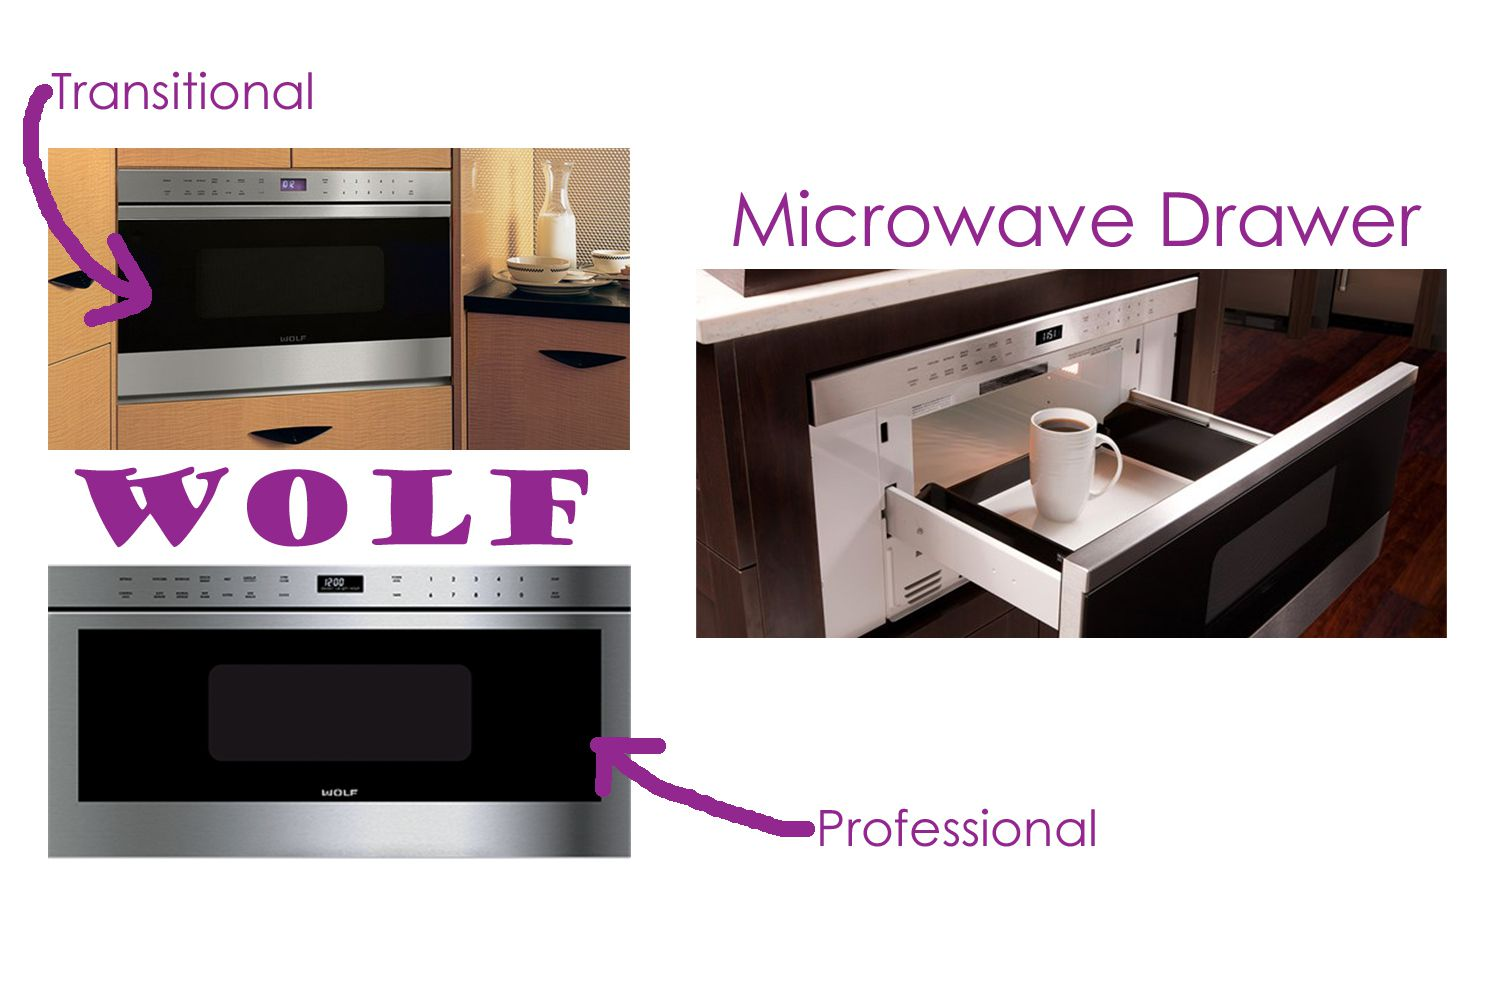 the microwave drawer